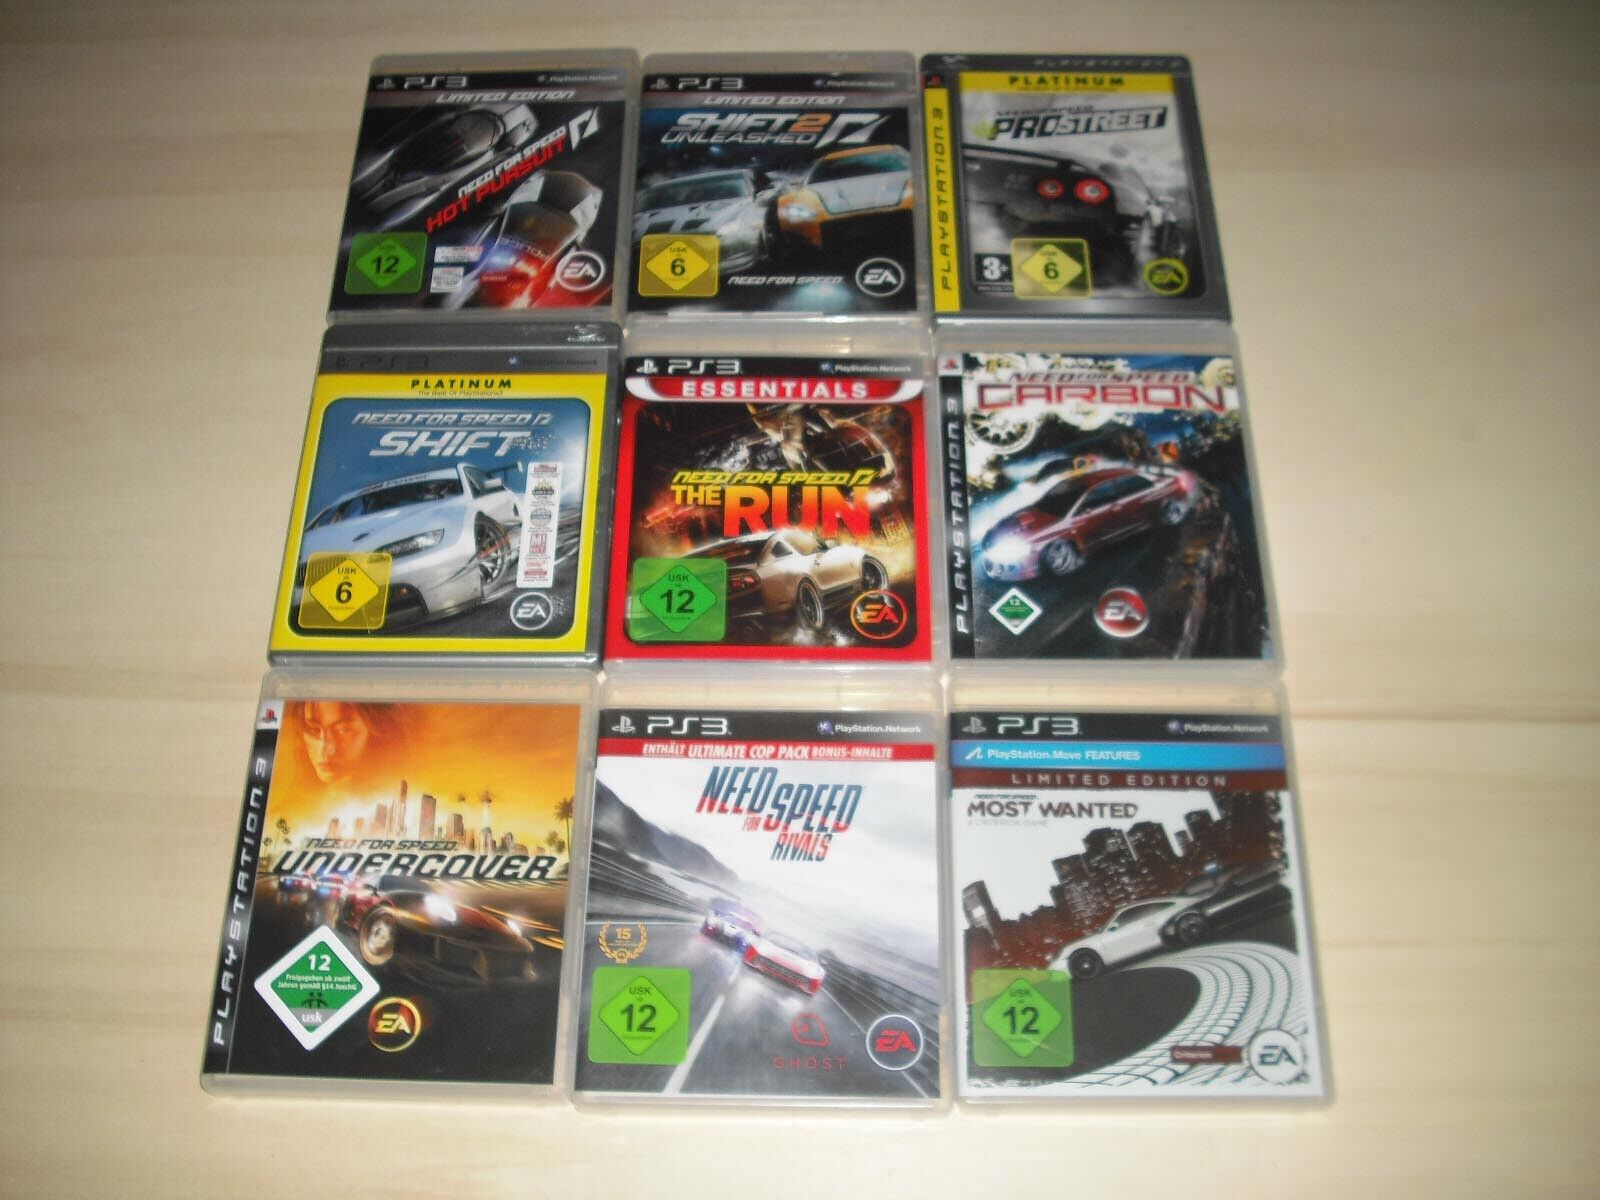 PS3 - 1 x Need for Speed Spiel nach Wahl ( Most Wanted, Rivals..) Playstation 3